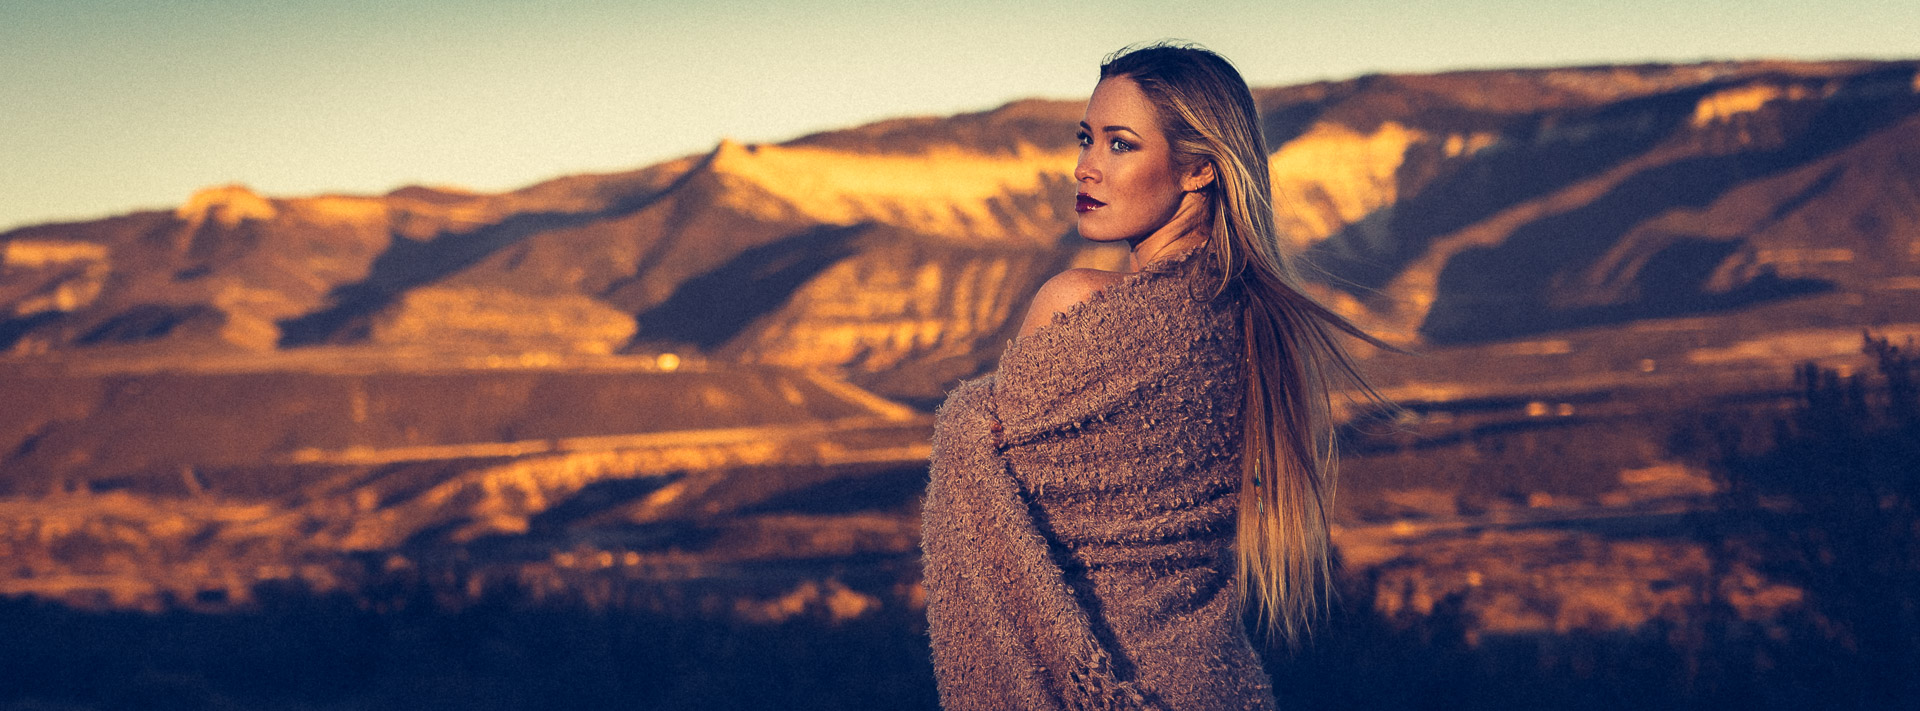 Andréa Noeli at sunset with a blanket